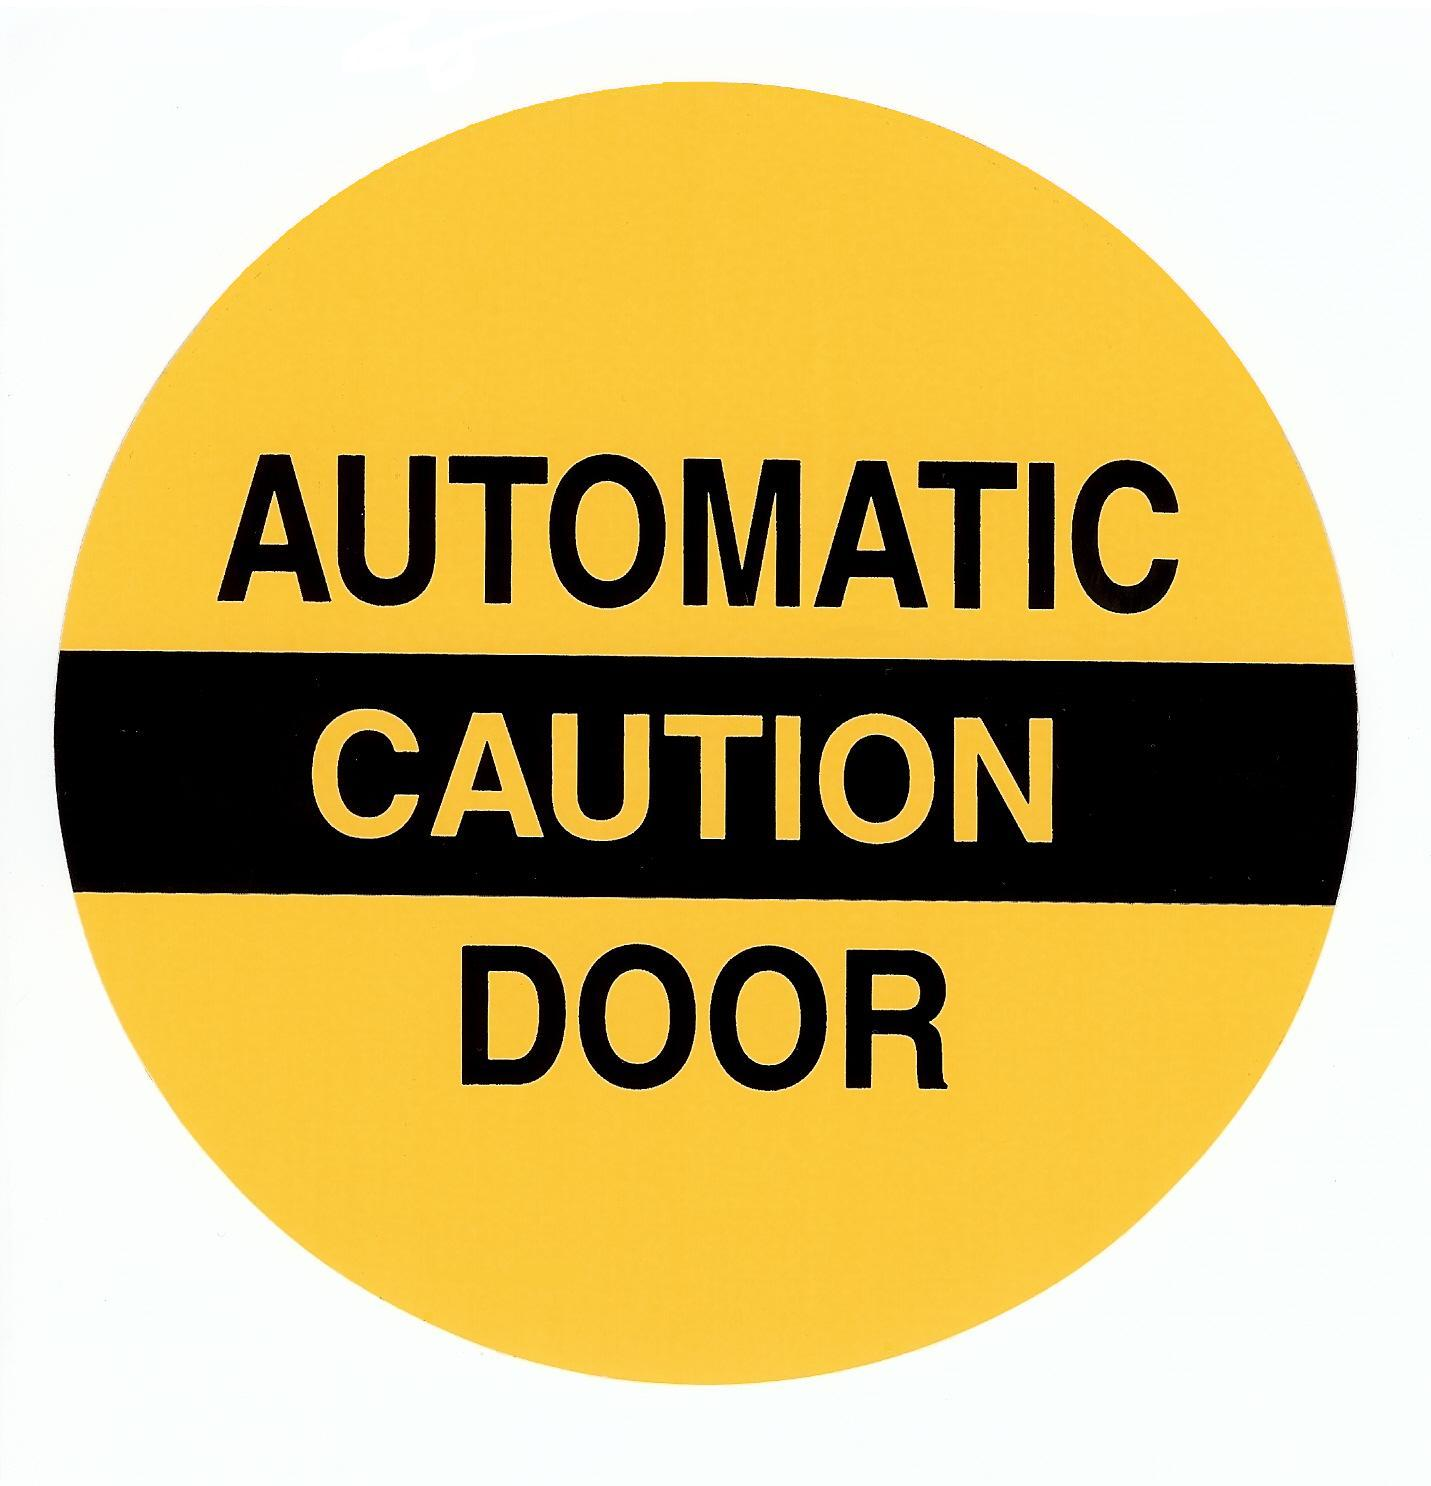 Automatic Door  sc 1 st  Barrier Free Access Systems & ADA Code Requirements for Signage - info at Barrier Free Access ...